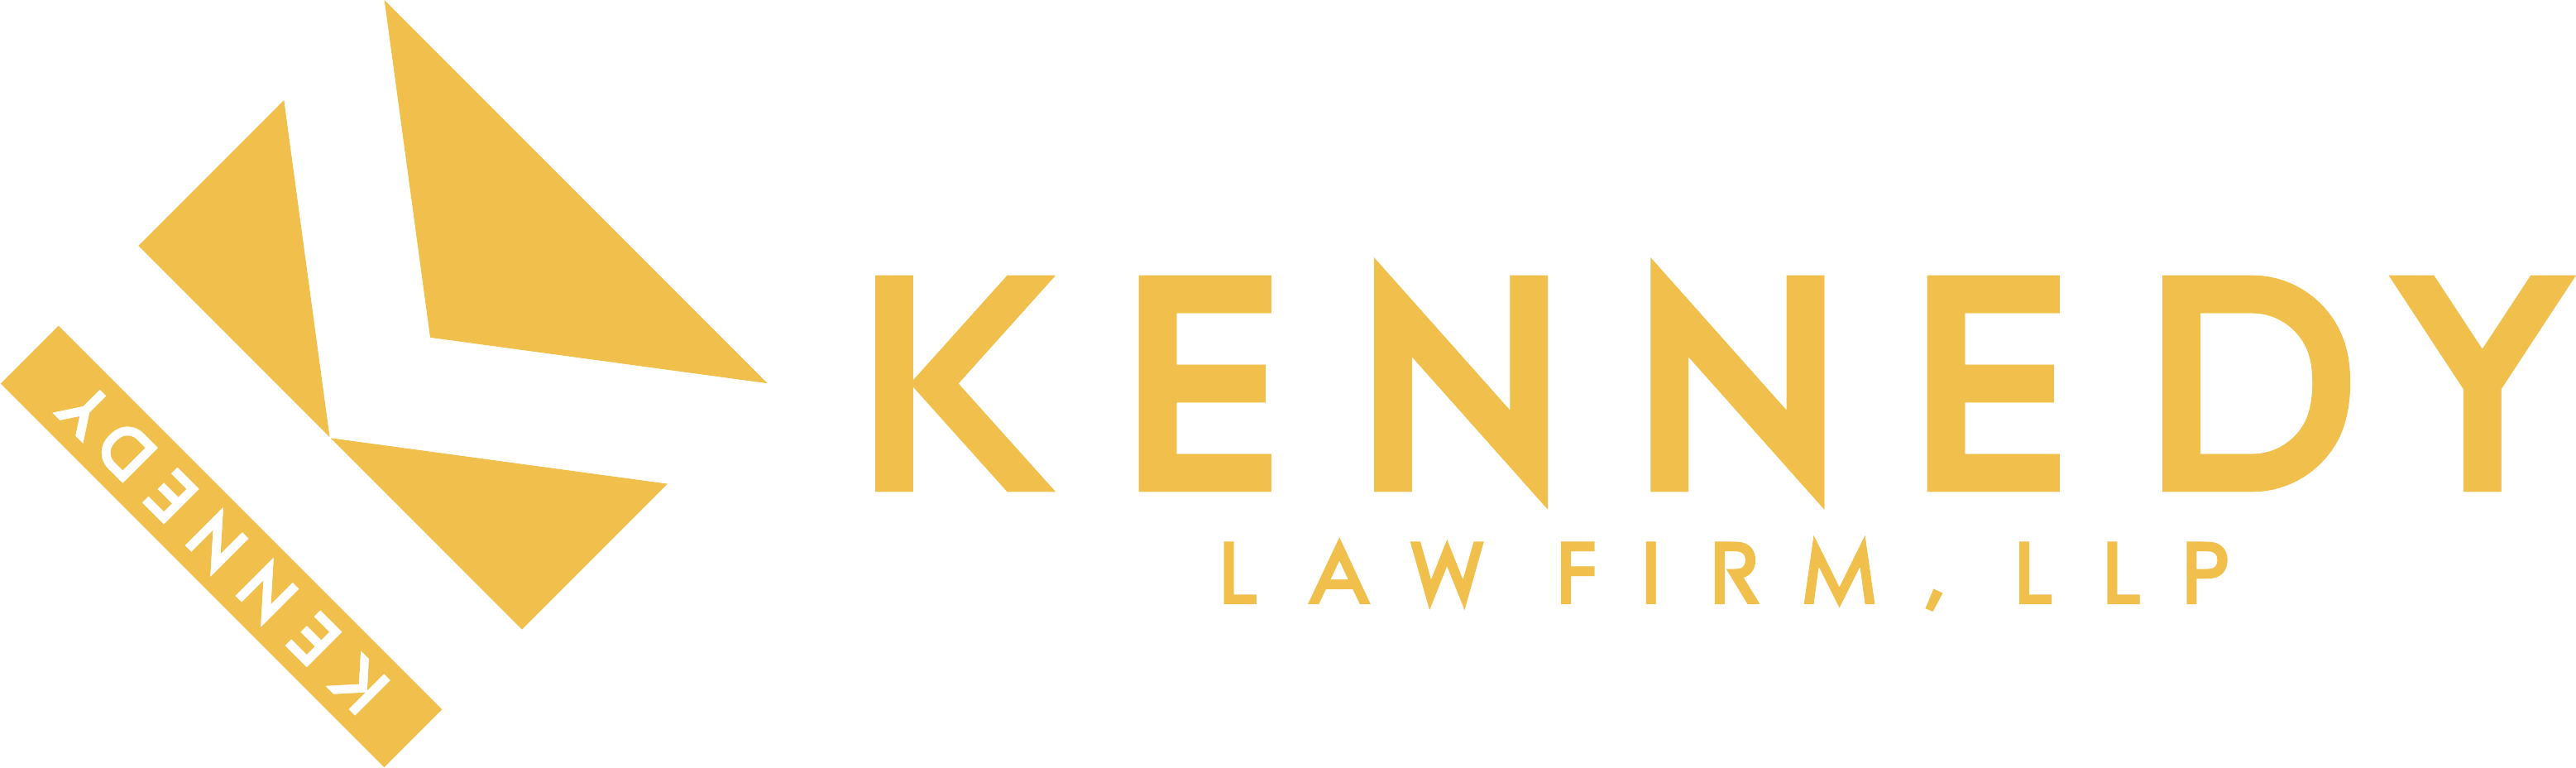 Kennedy Law Firm, LLP